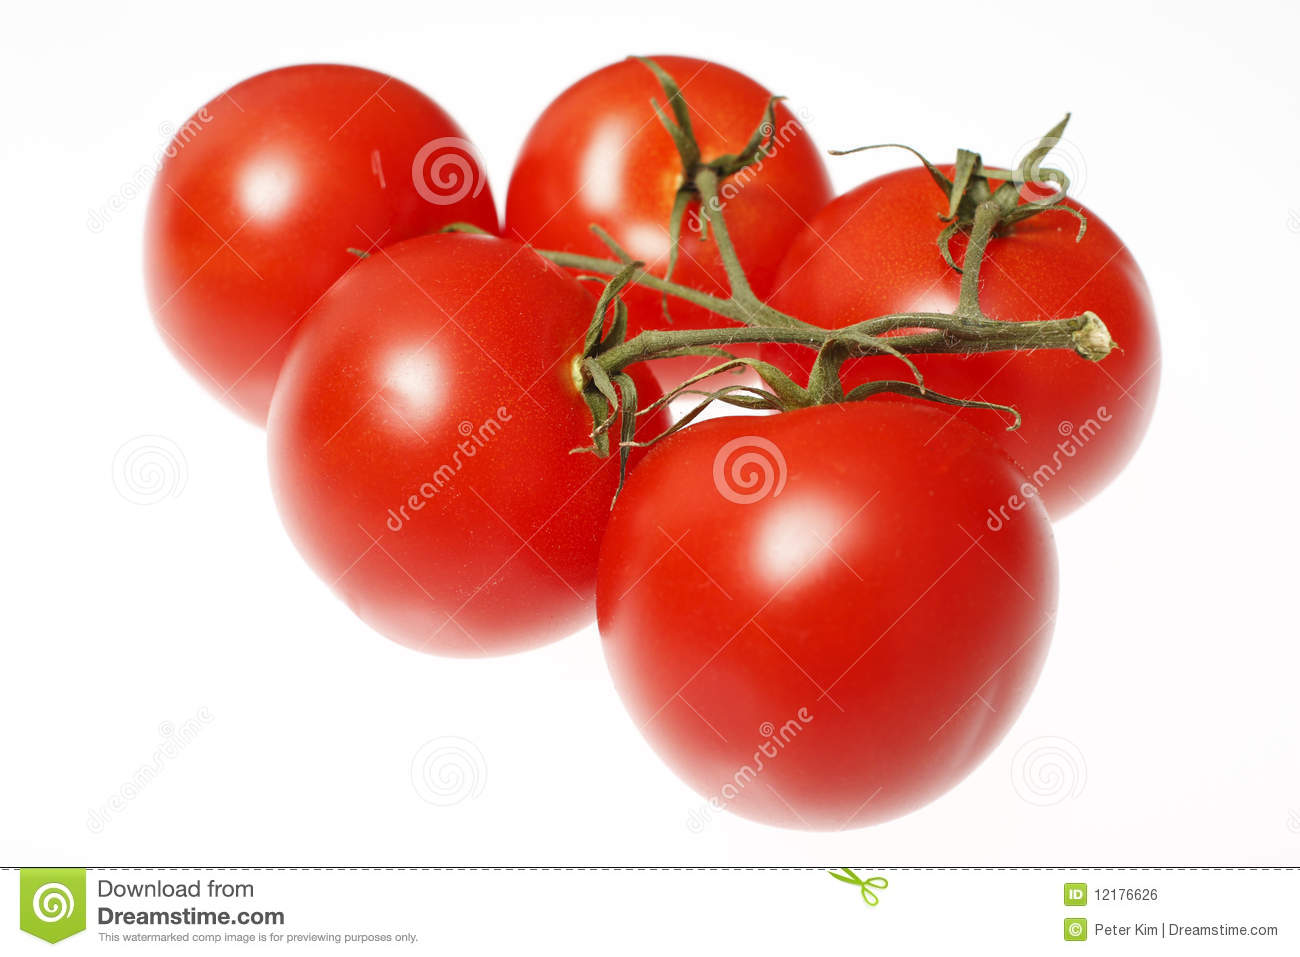 Fresh Red Tomatoes Royalty Free Stock Image - Image: 12176626